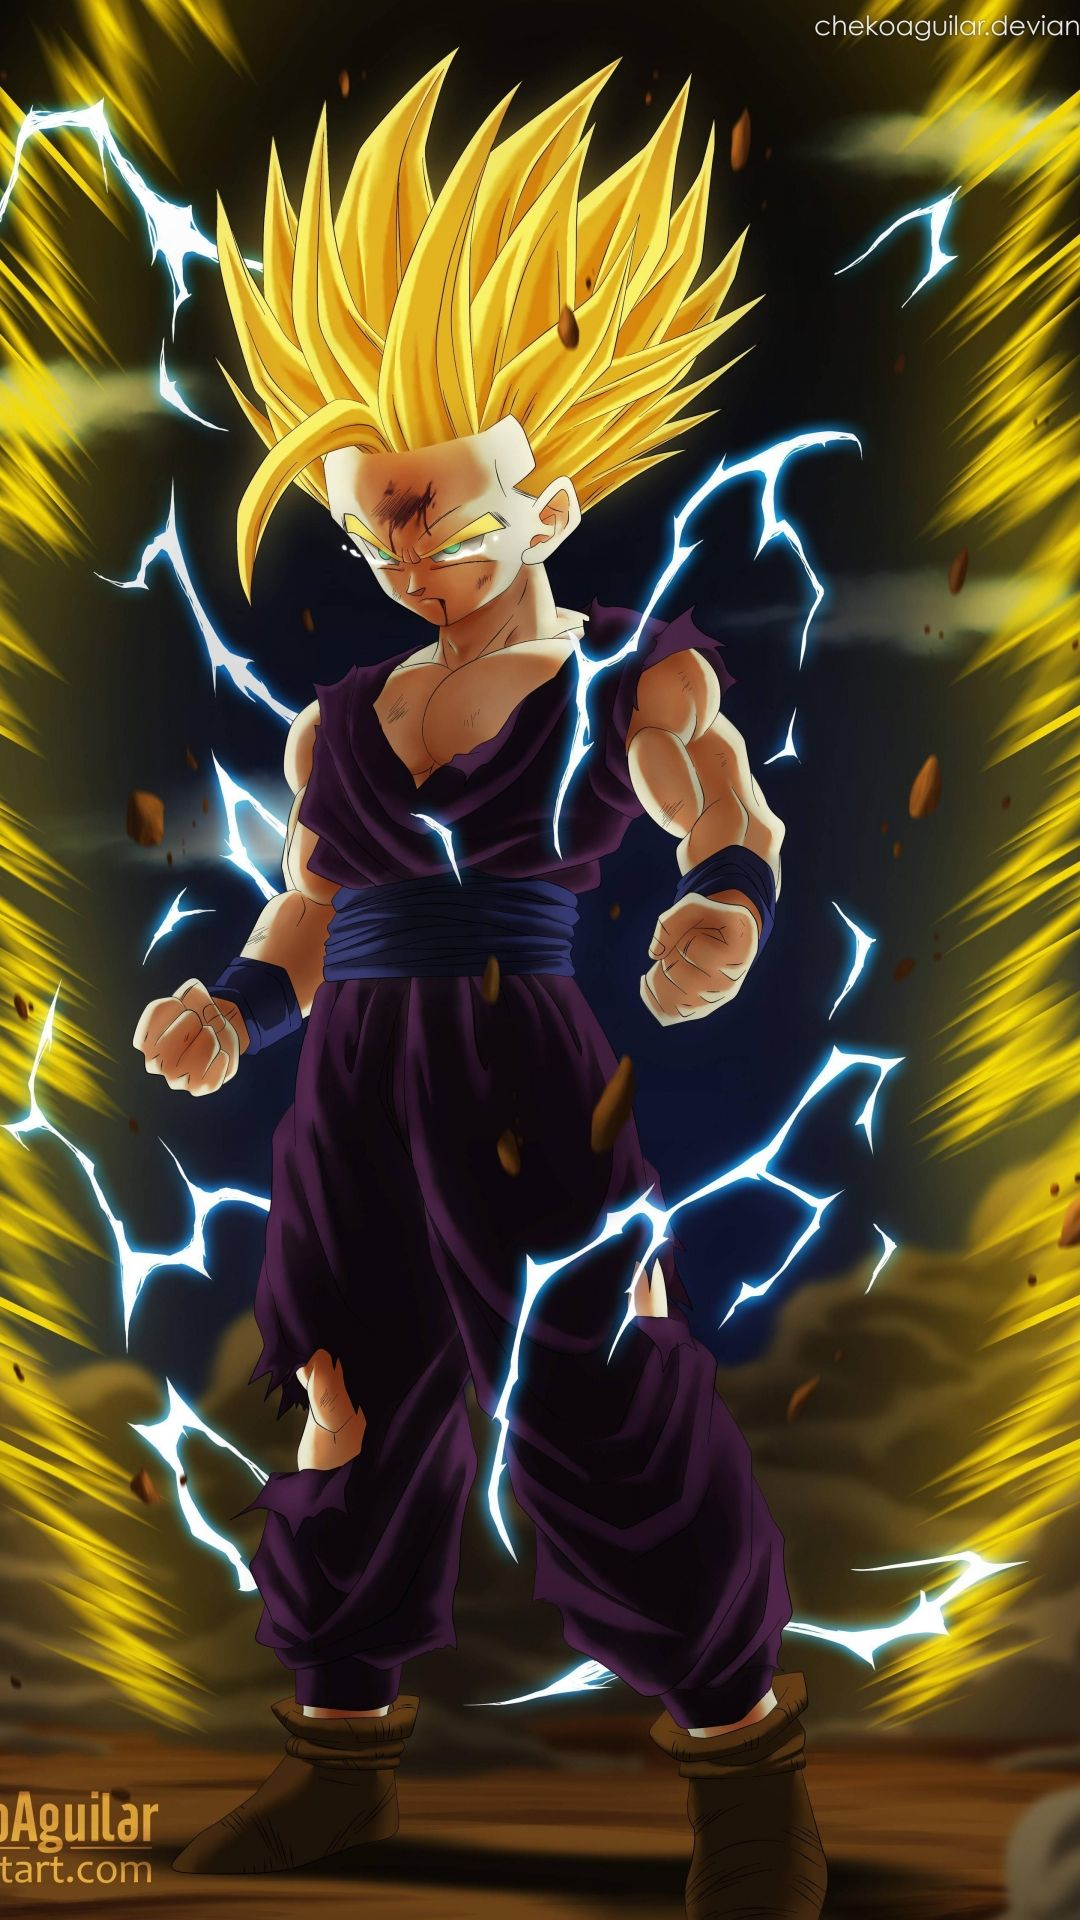 Gohan Apple wallpaper HD